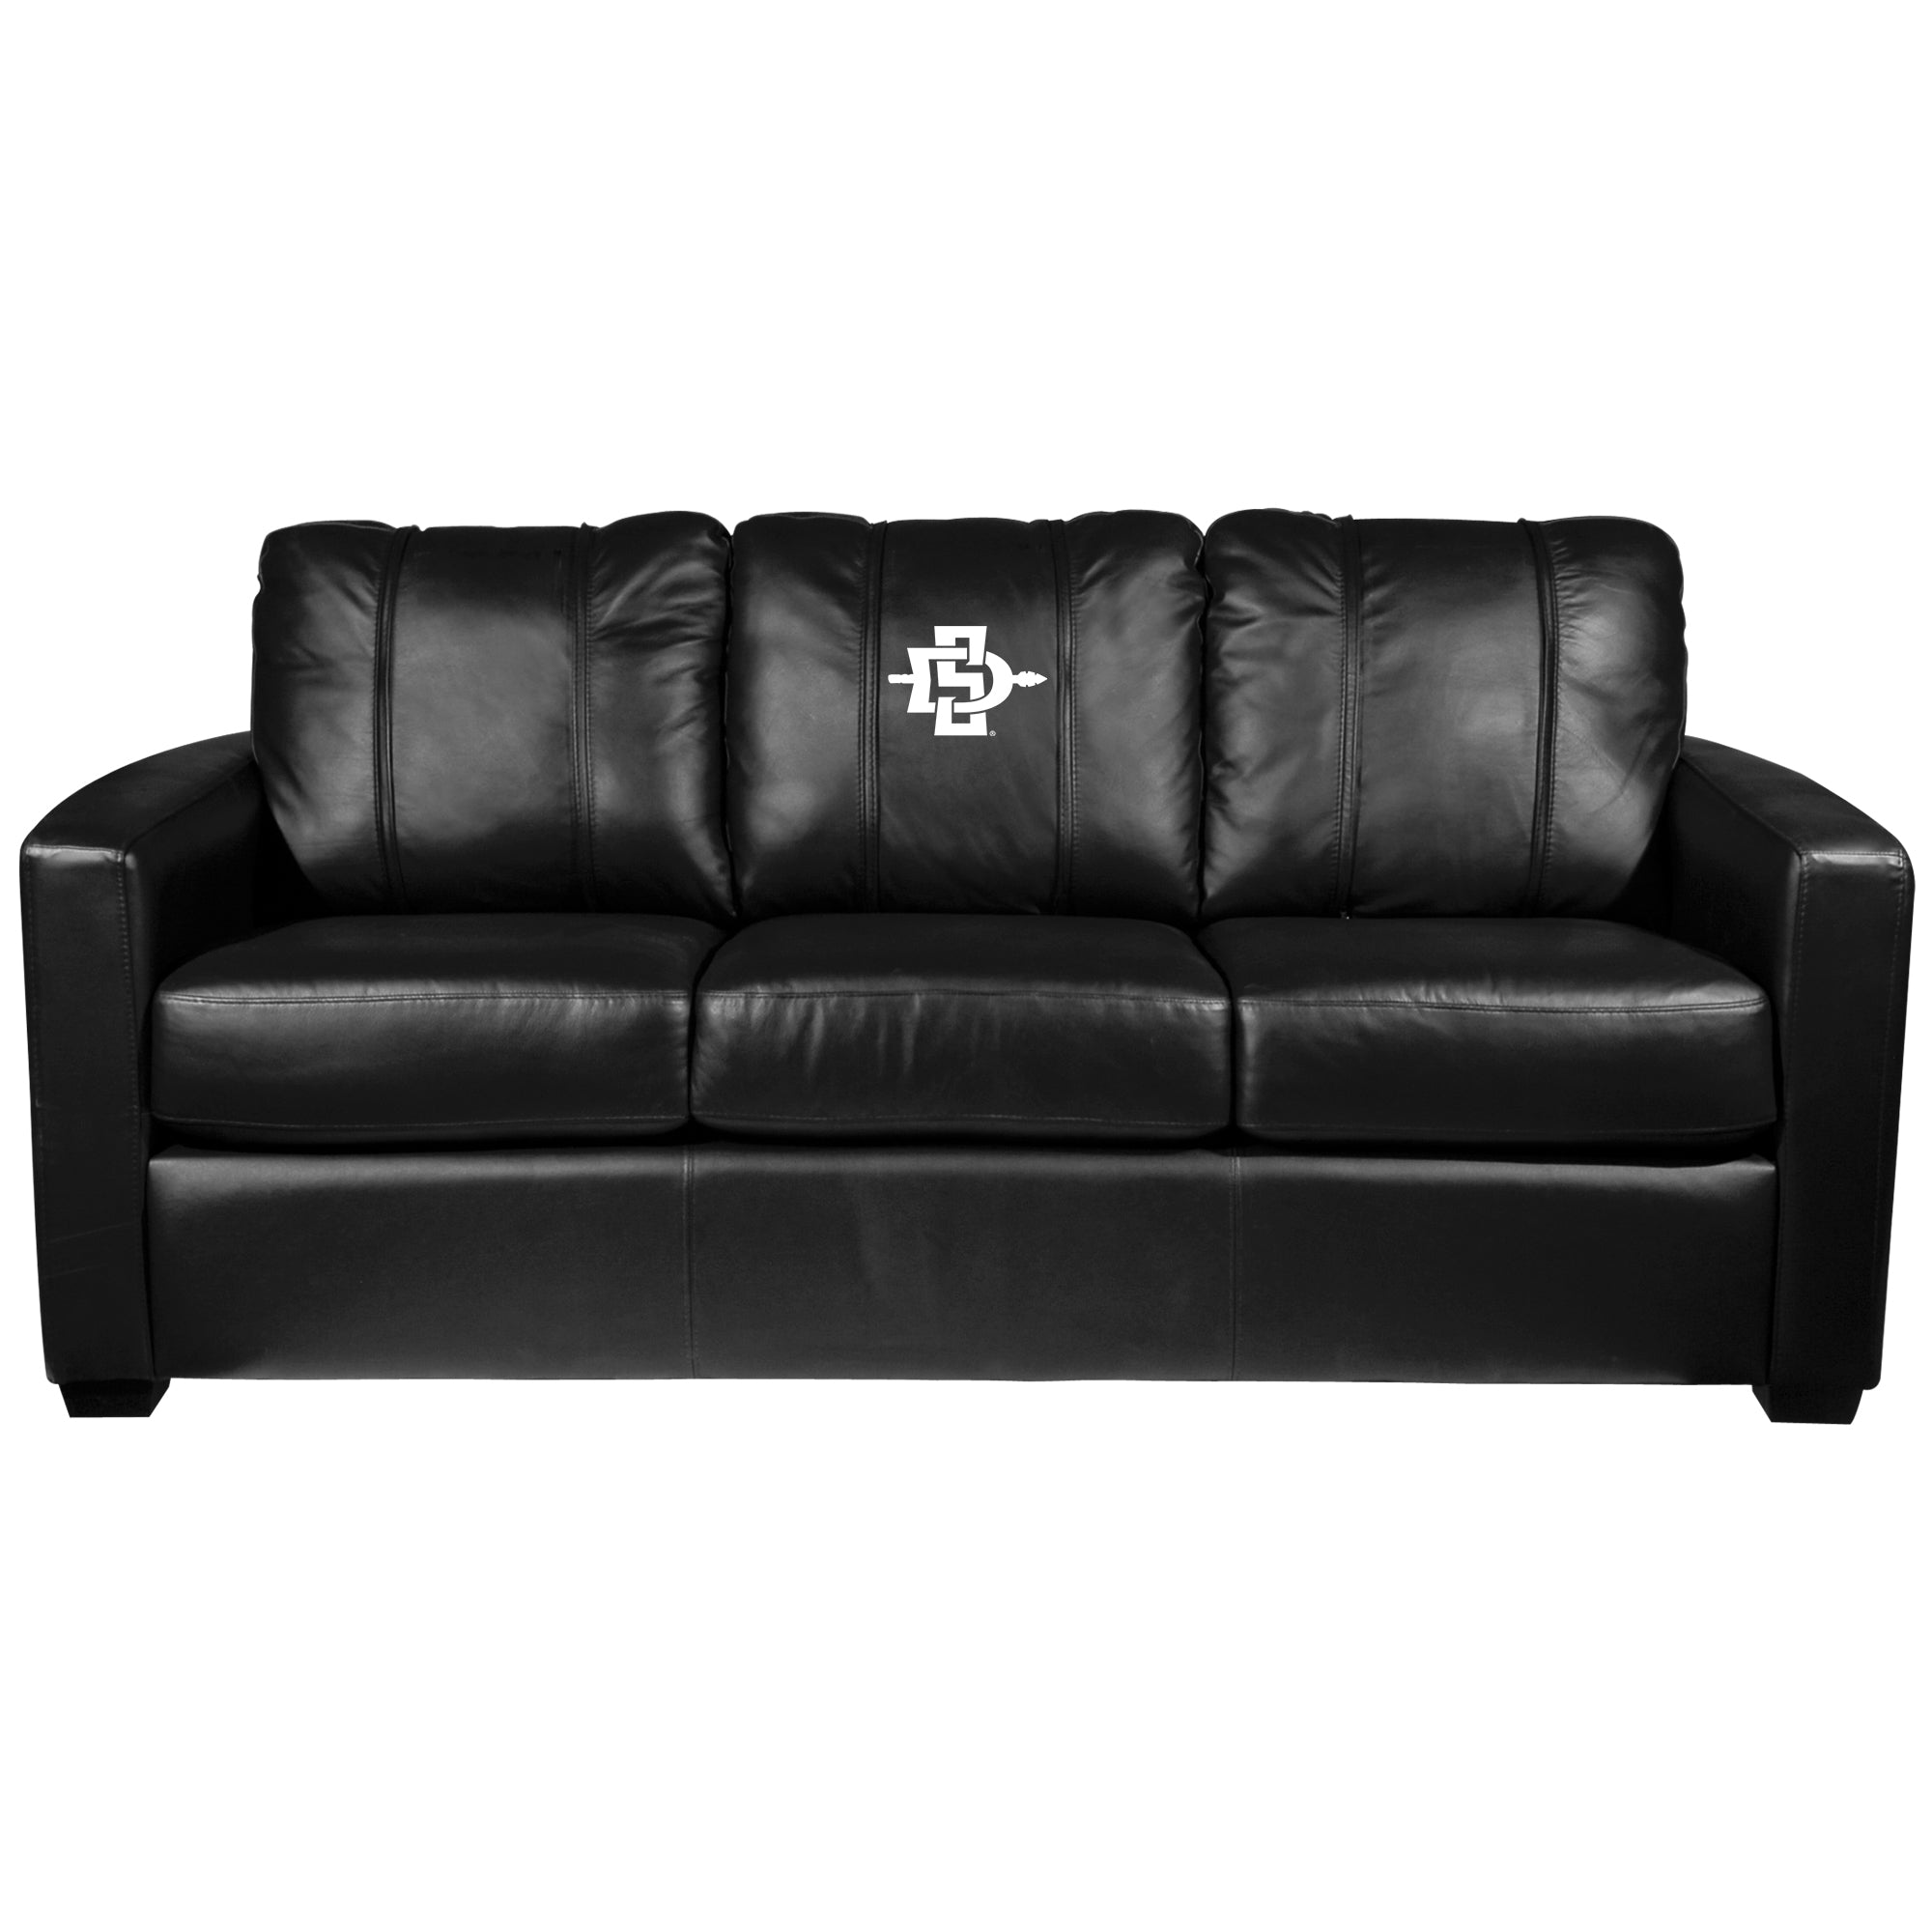 Silver Sofa with San Diego State Alternate